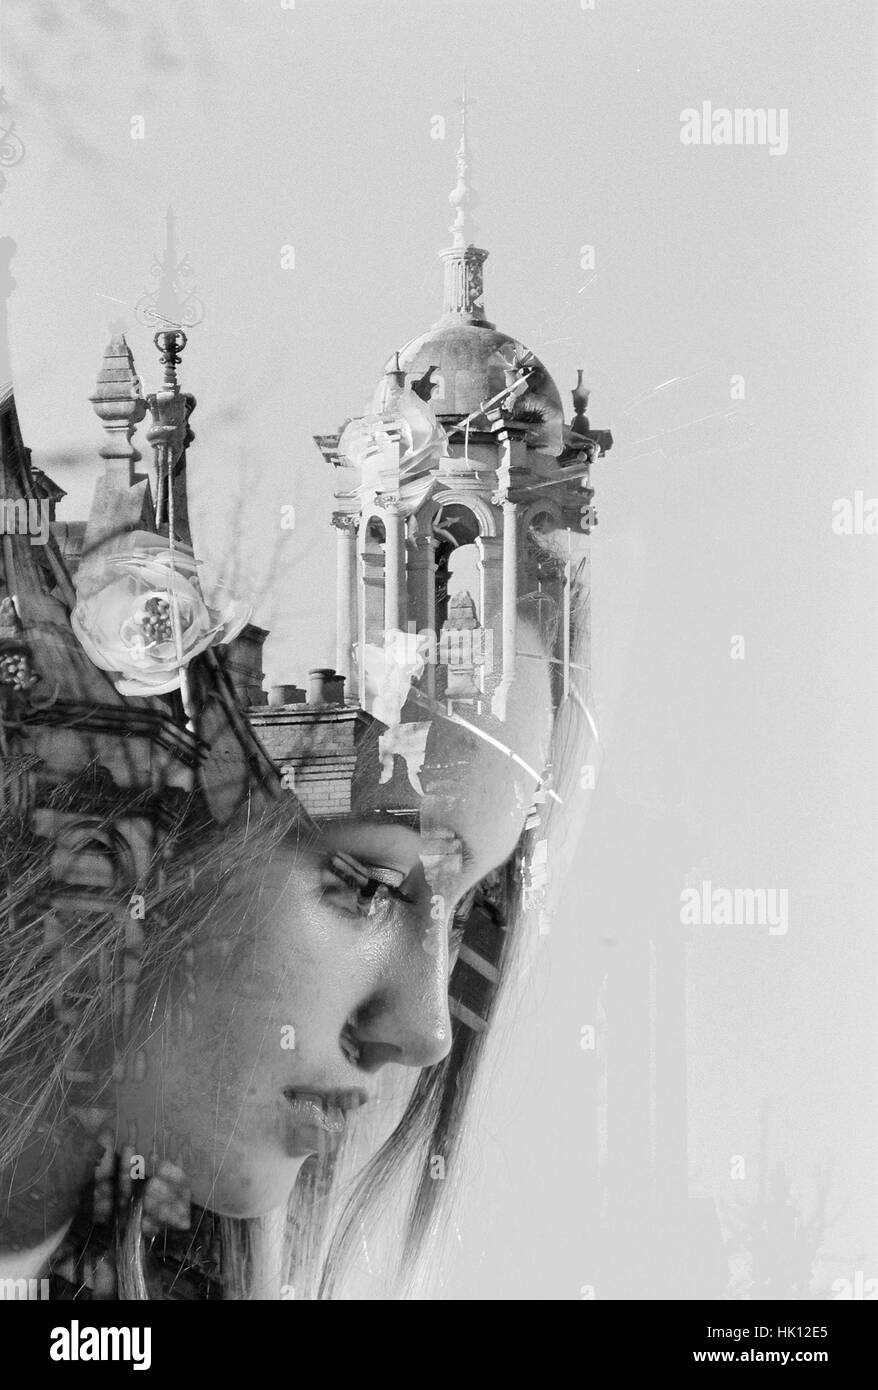 Double exposure; girl blending into building - Stock Image